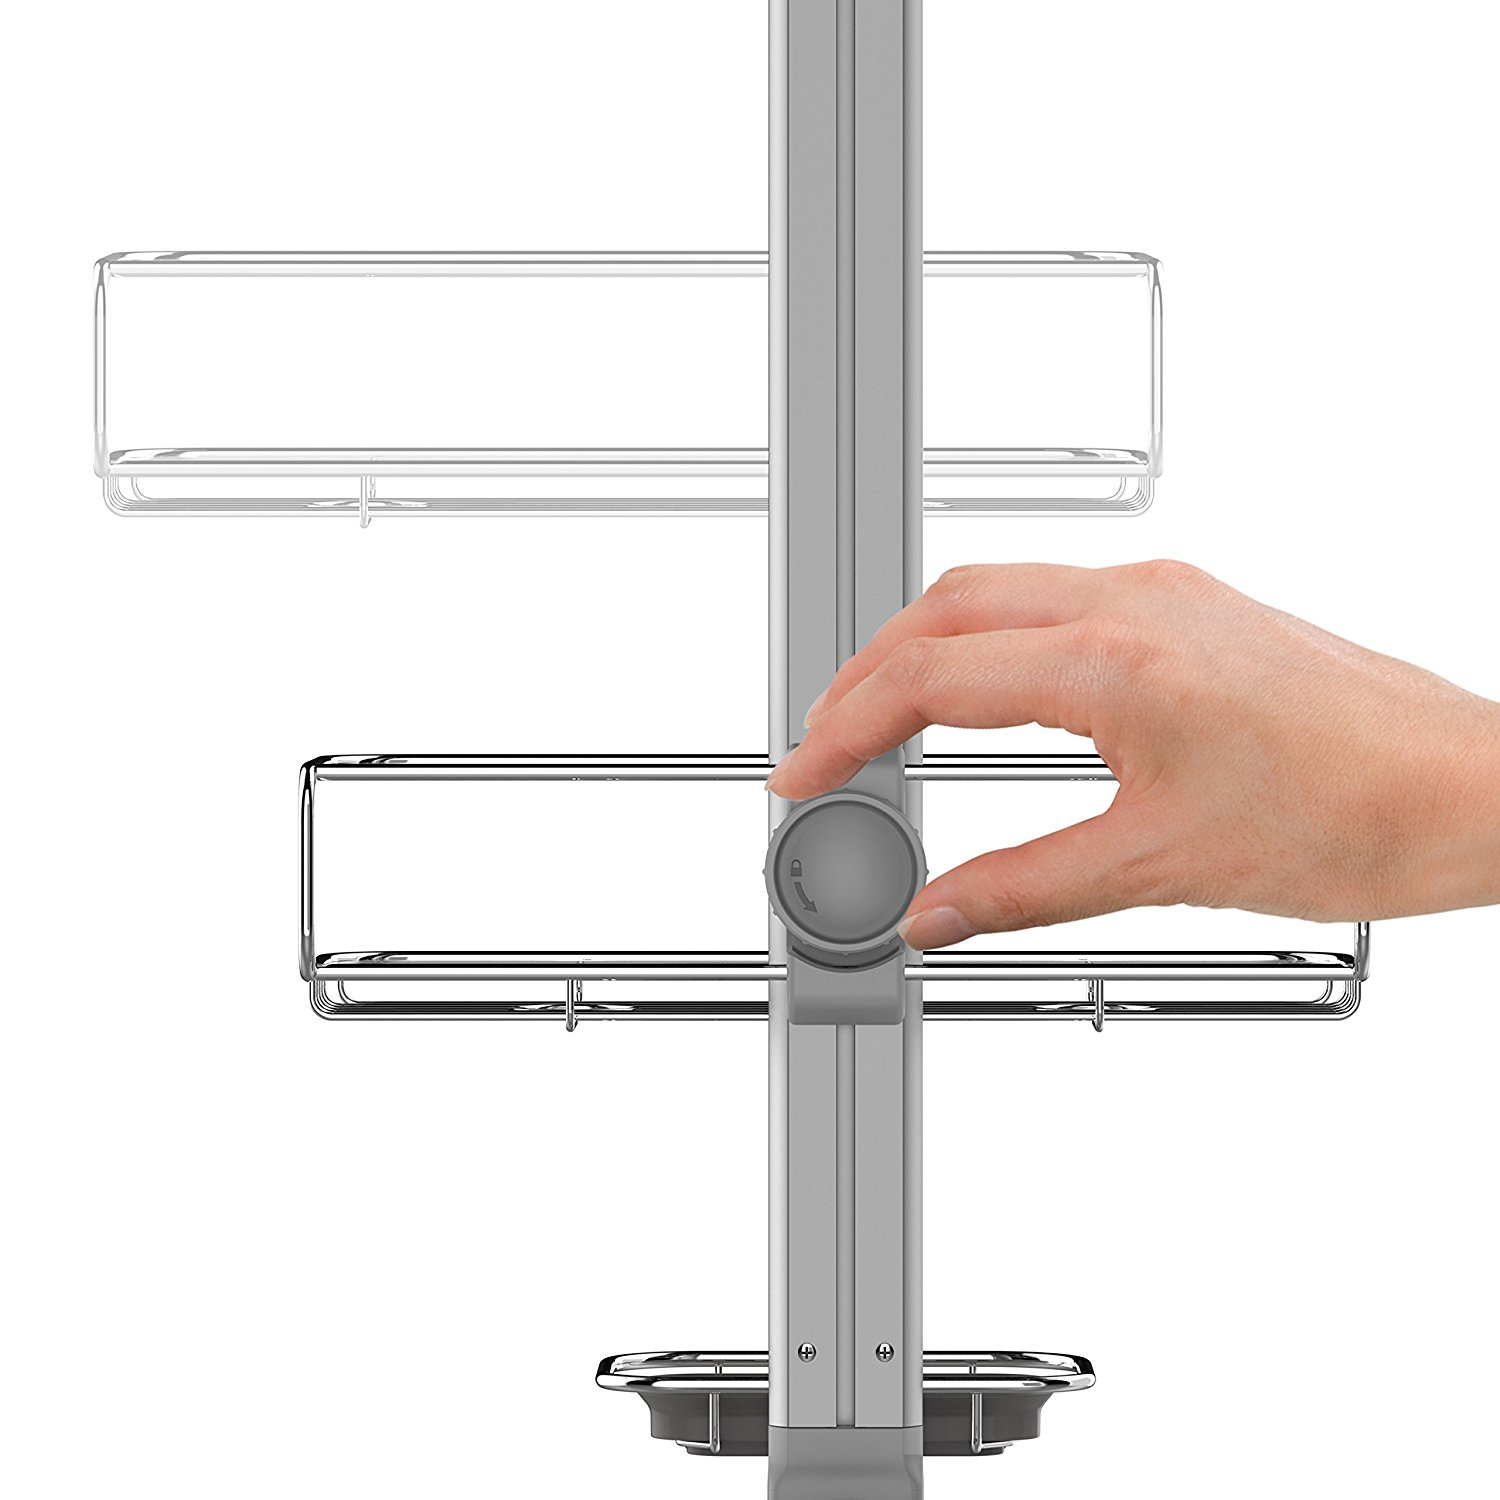 Have A Best Shower Caddy with Simplehuman Shower Caddy: Shower Tension Rod Caddy | Simplehuman Shower Caddy | Simplehuman Shower Caddy Replacement Parts